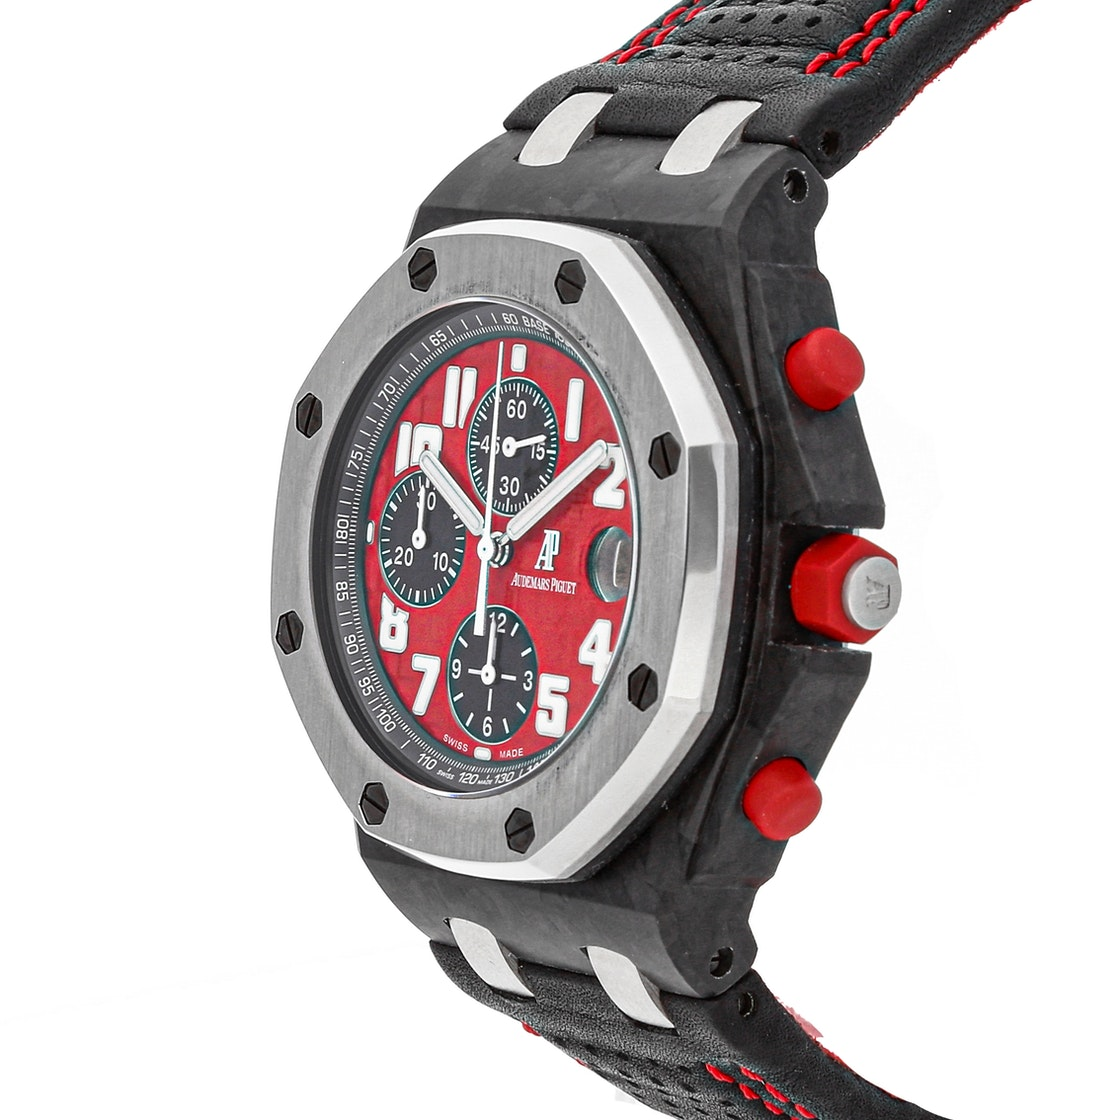 Audemars Piguet Royal Oak Offshore Singapore Grand Prix F1 Limited Edition 26190OS.OO.D003CU.01